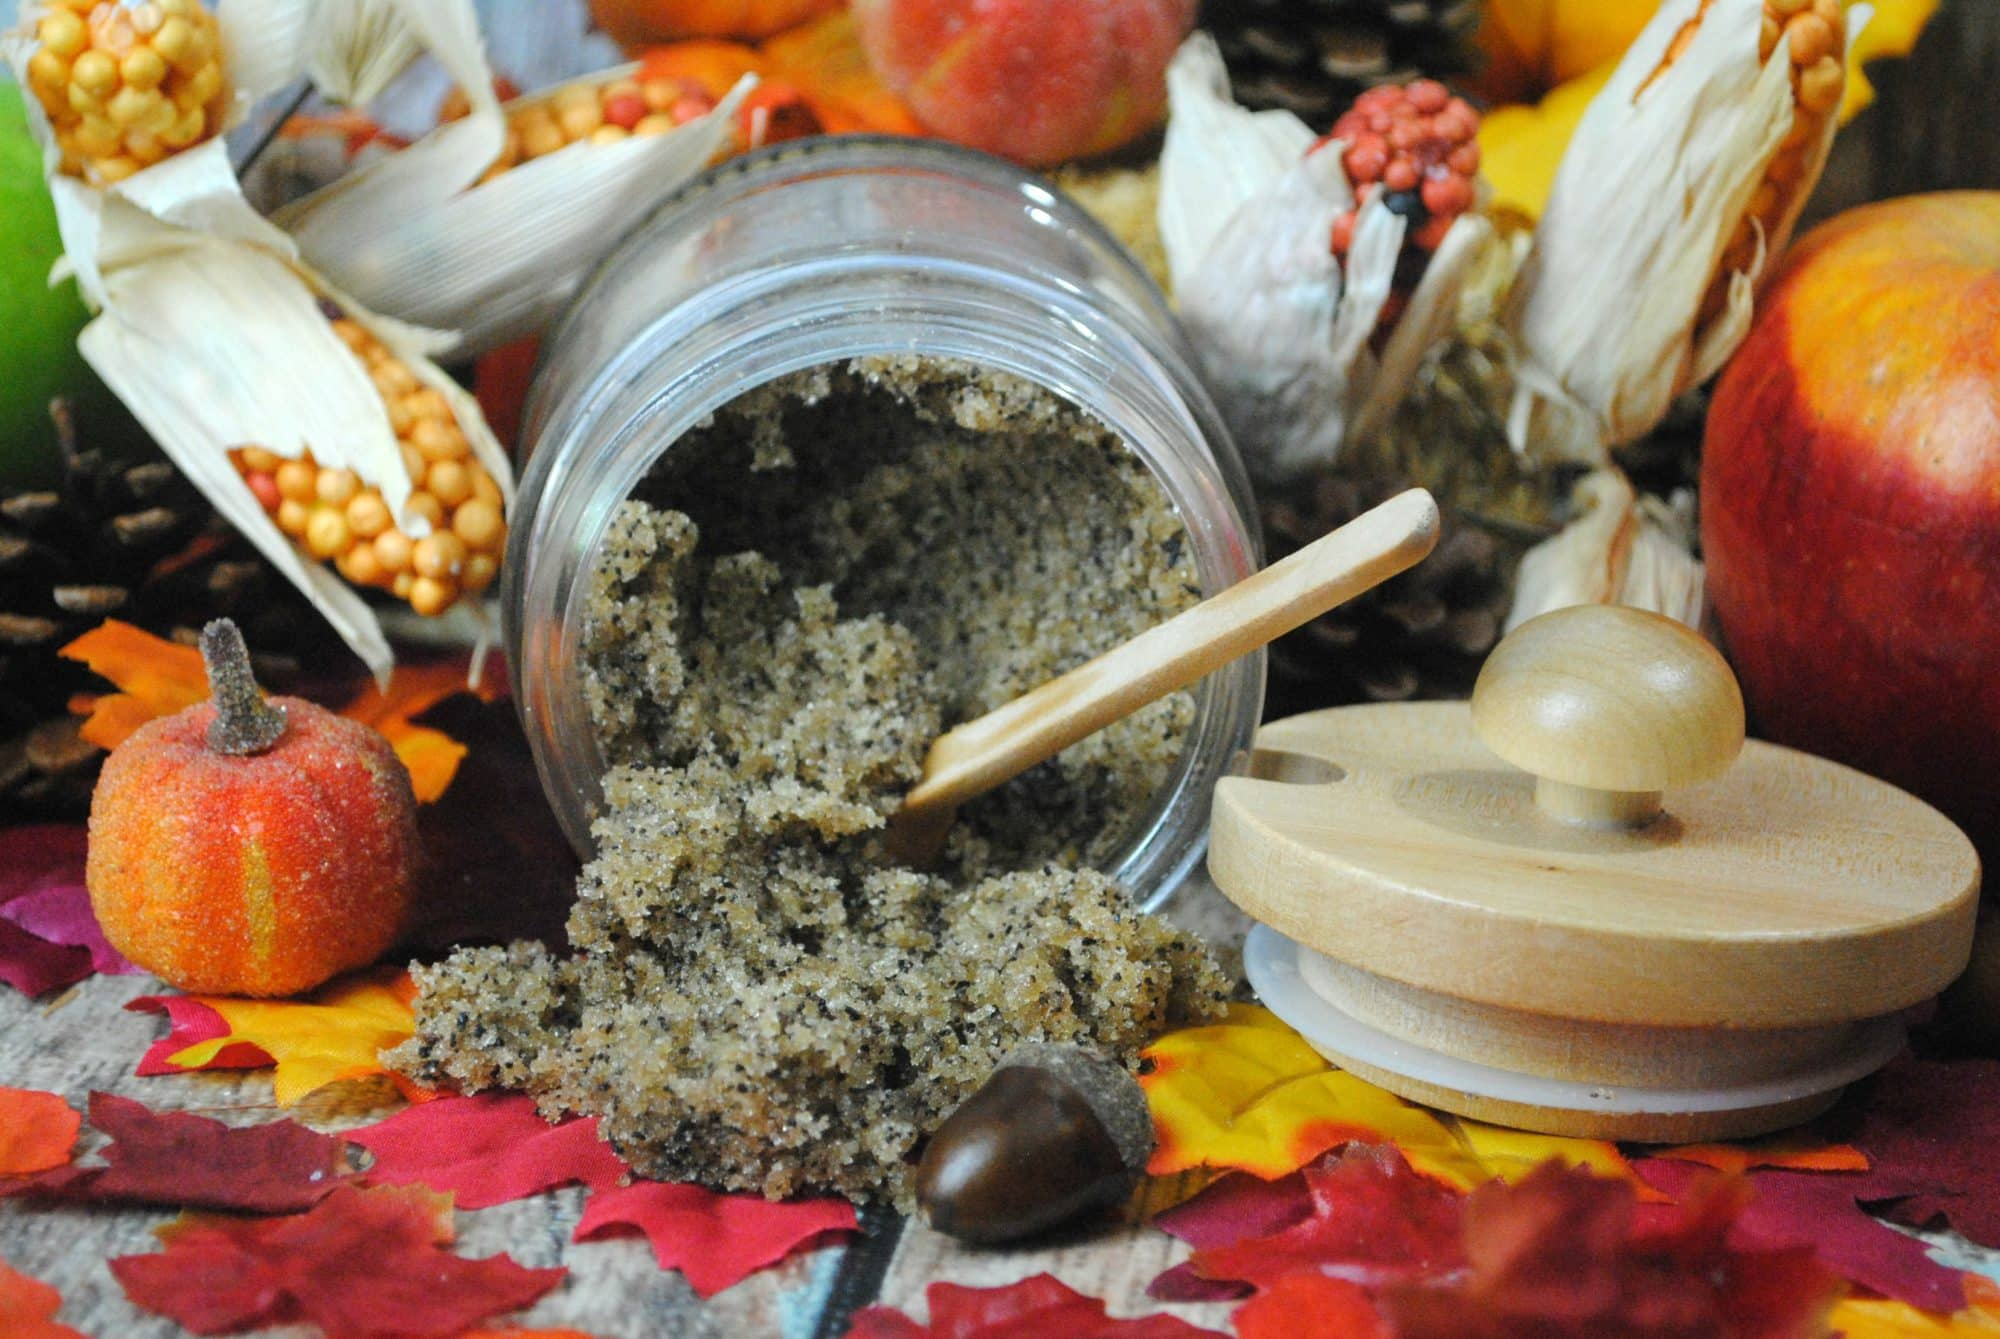 DIY beauty products - Cinnamon Chai Scrub